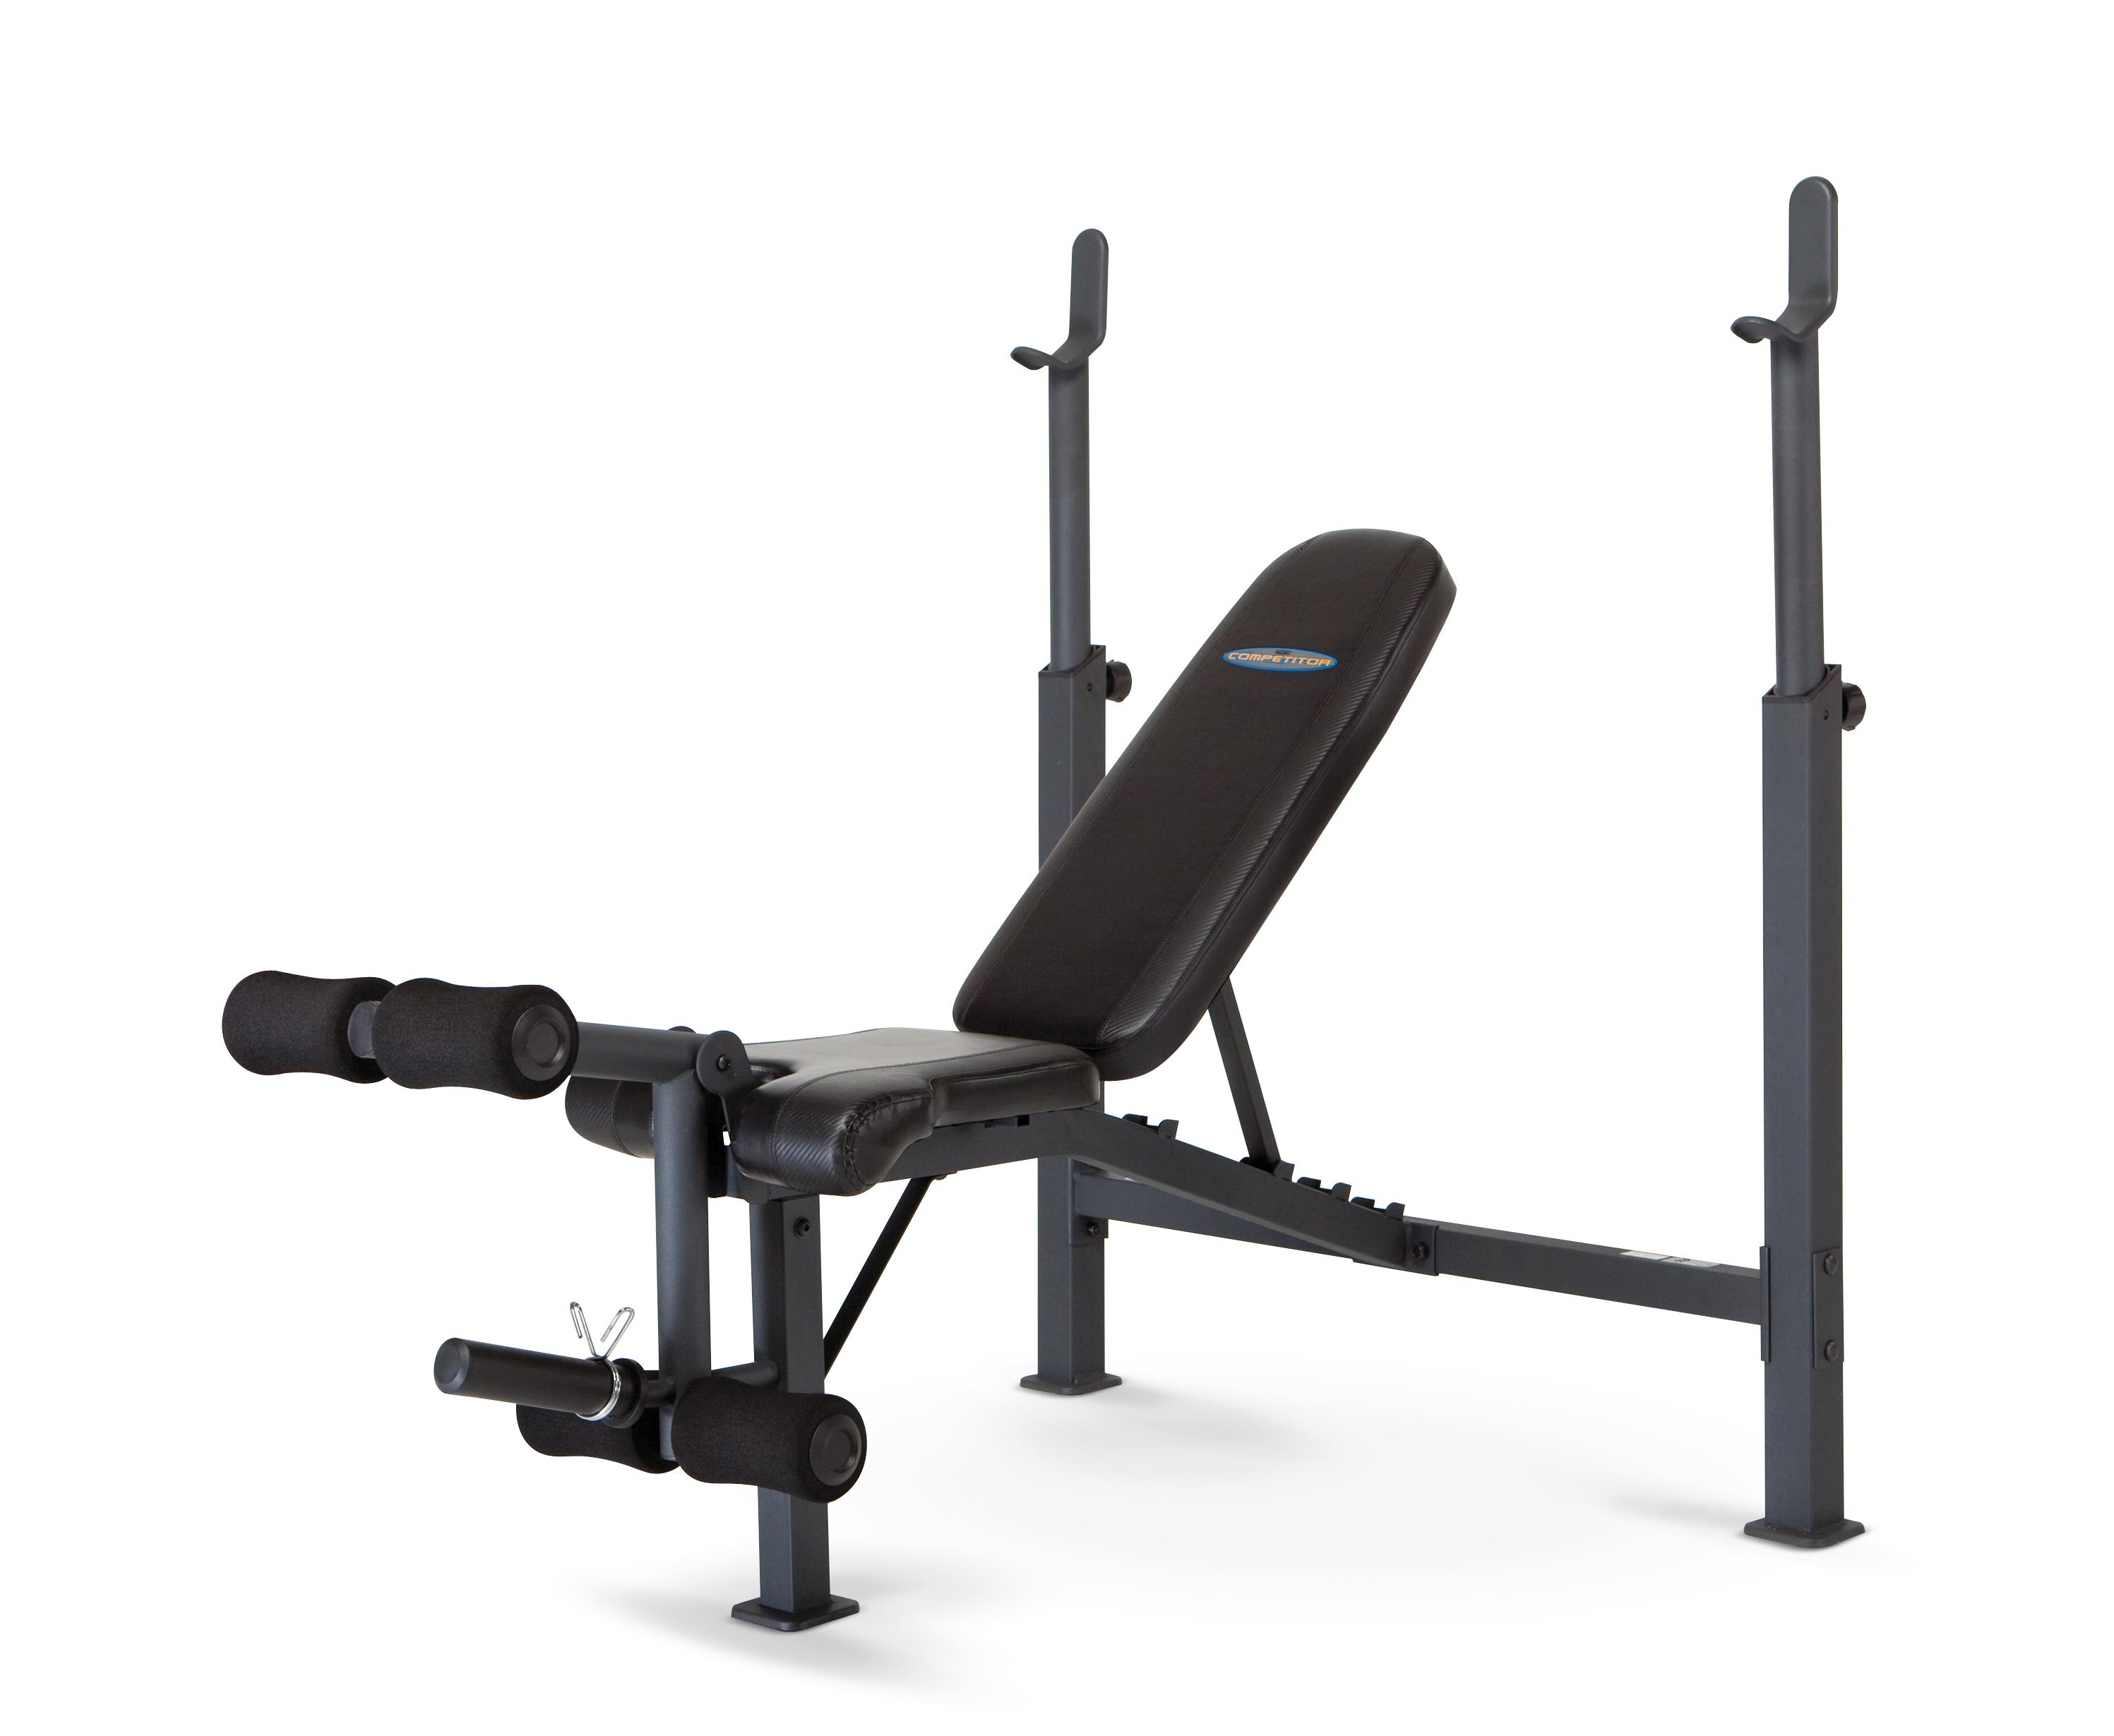 Home Gym Weight Bench Competitor Olympic Size Fitness Exercise Workout Equipment Ebay